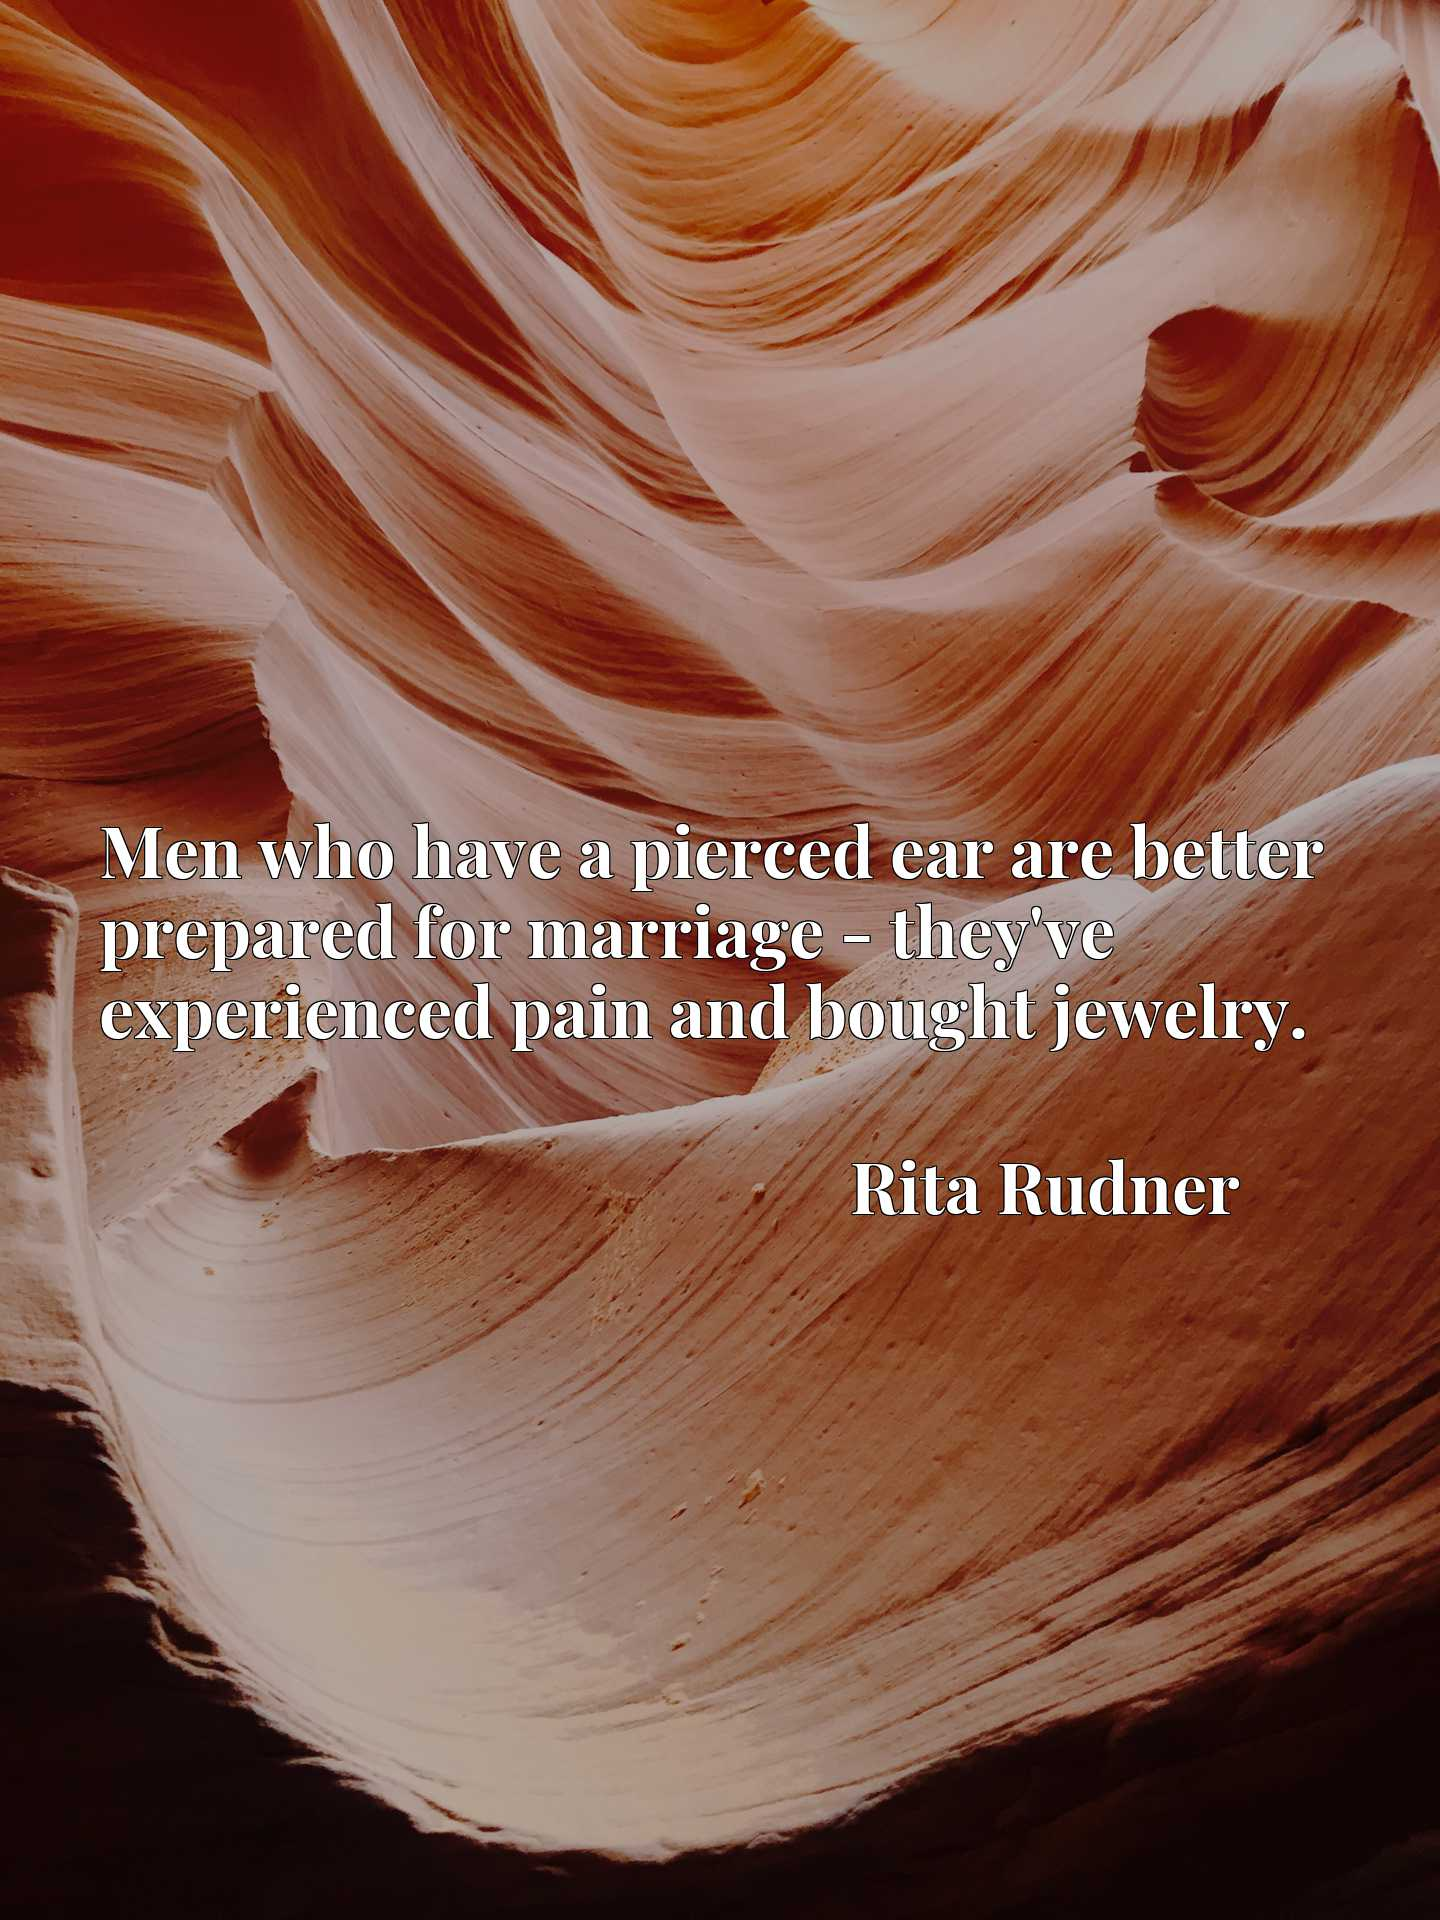 Quote Picture :Men who have a pierced ear are better prepared for marriage - they've experienced pain and bought jewelry.